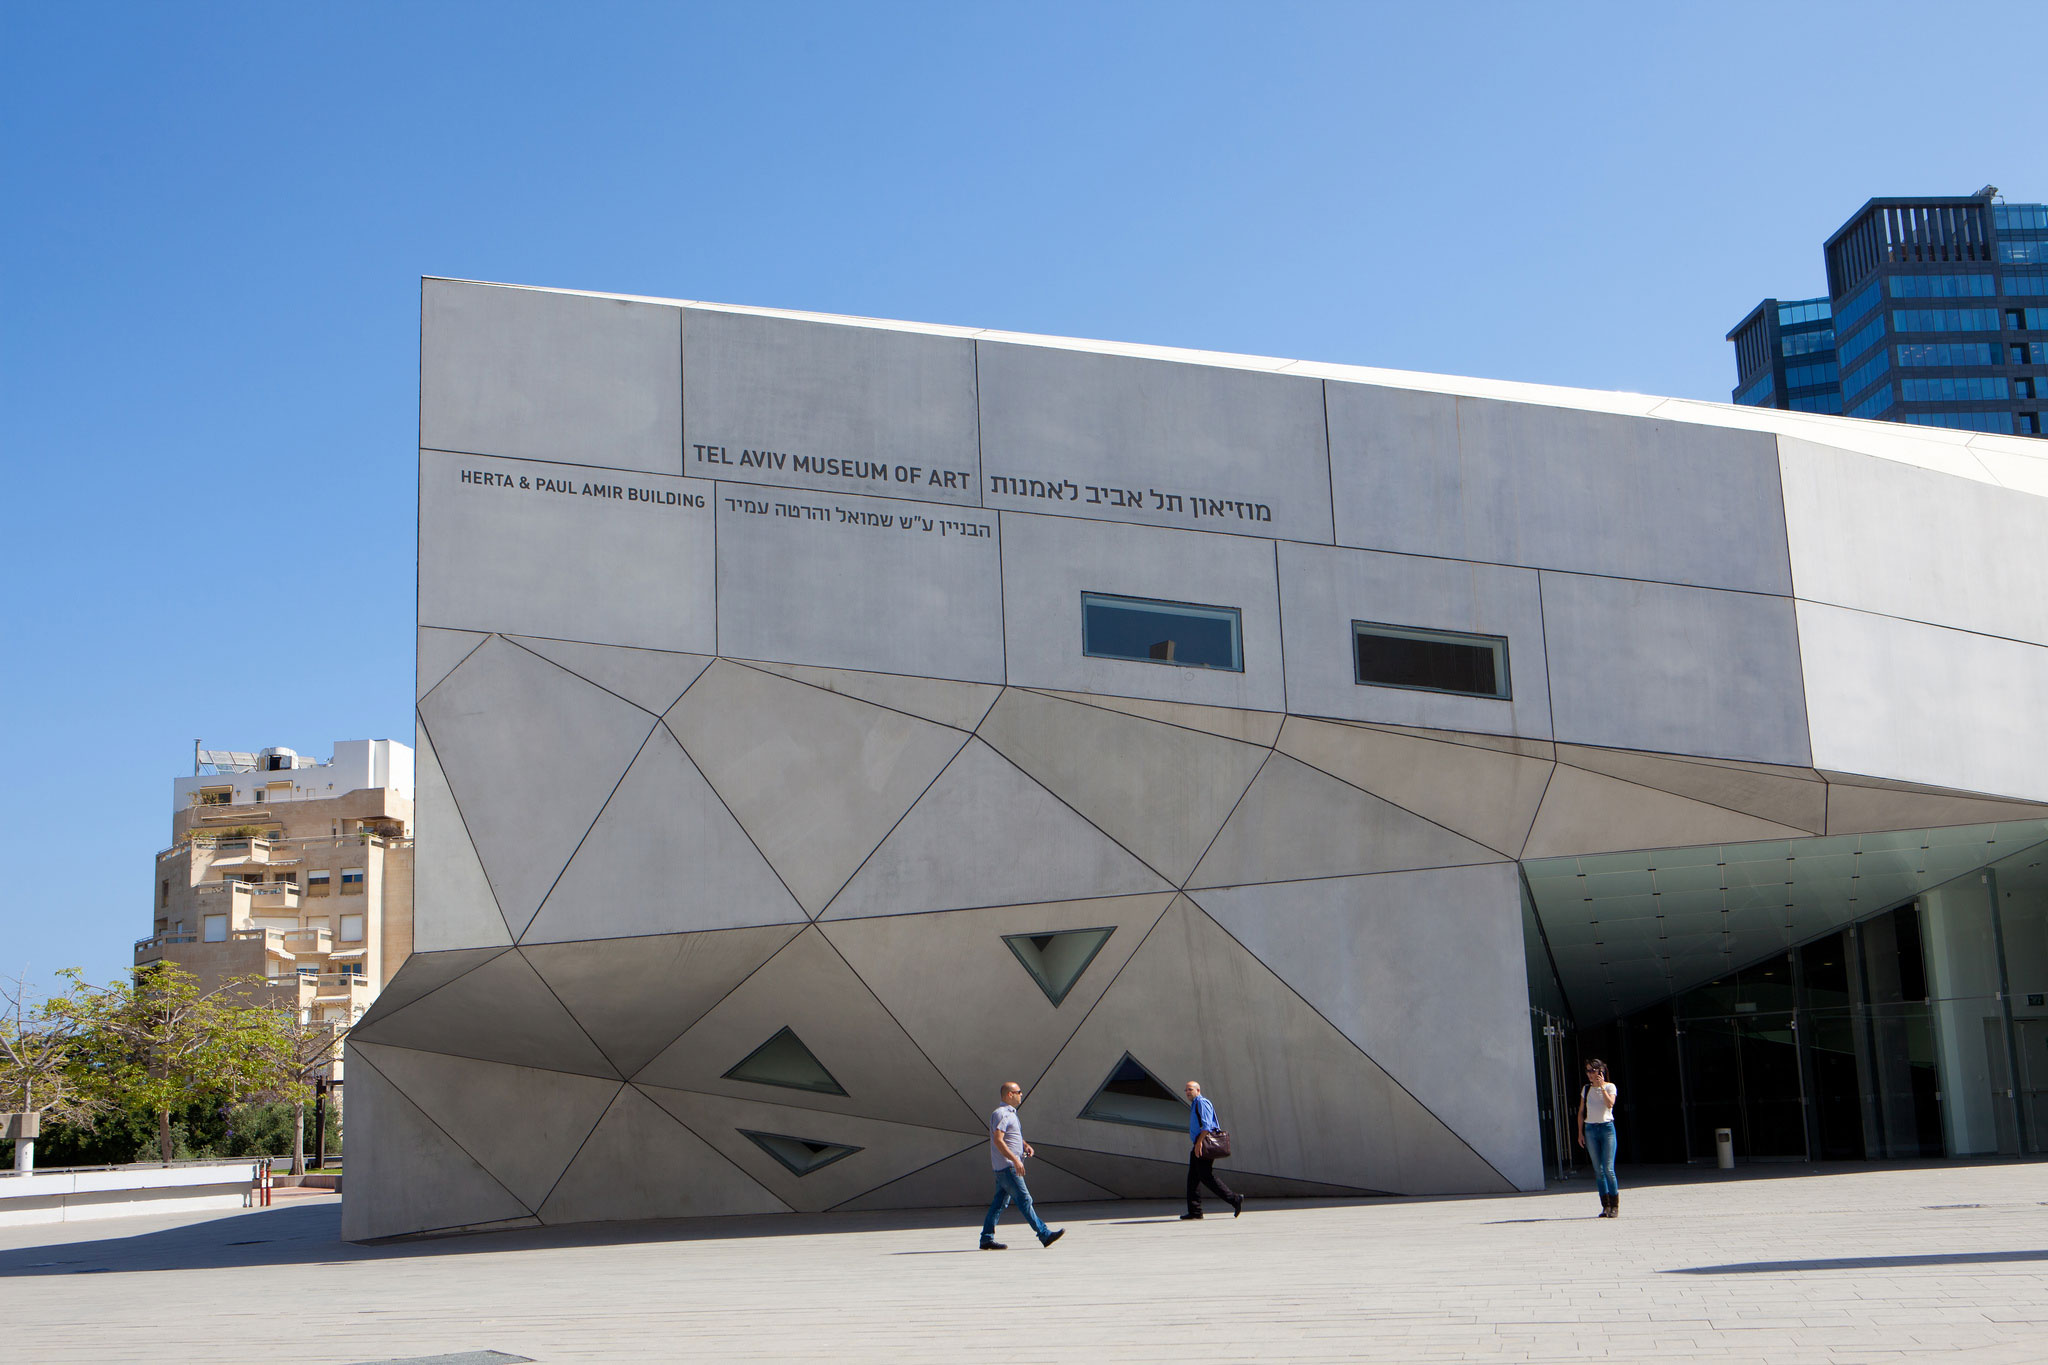 Tel Aviv is awash with culture and has various museums dotted around the city